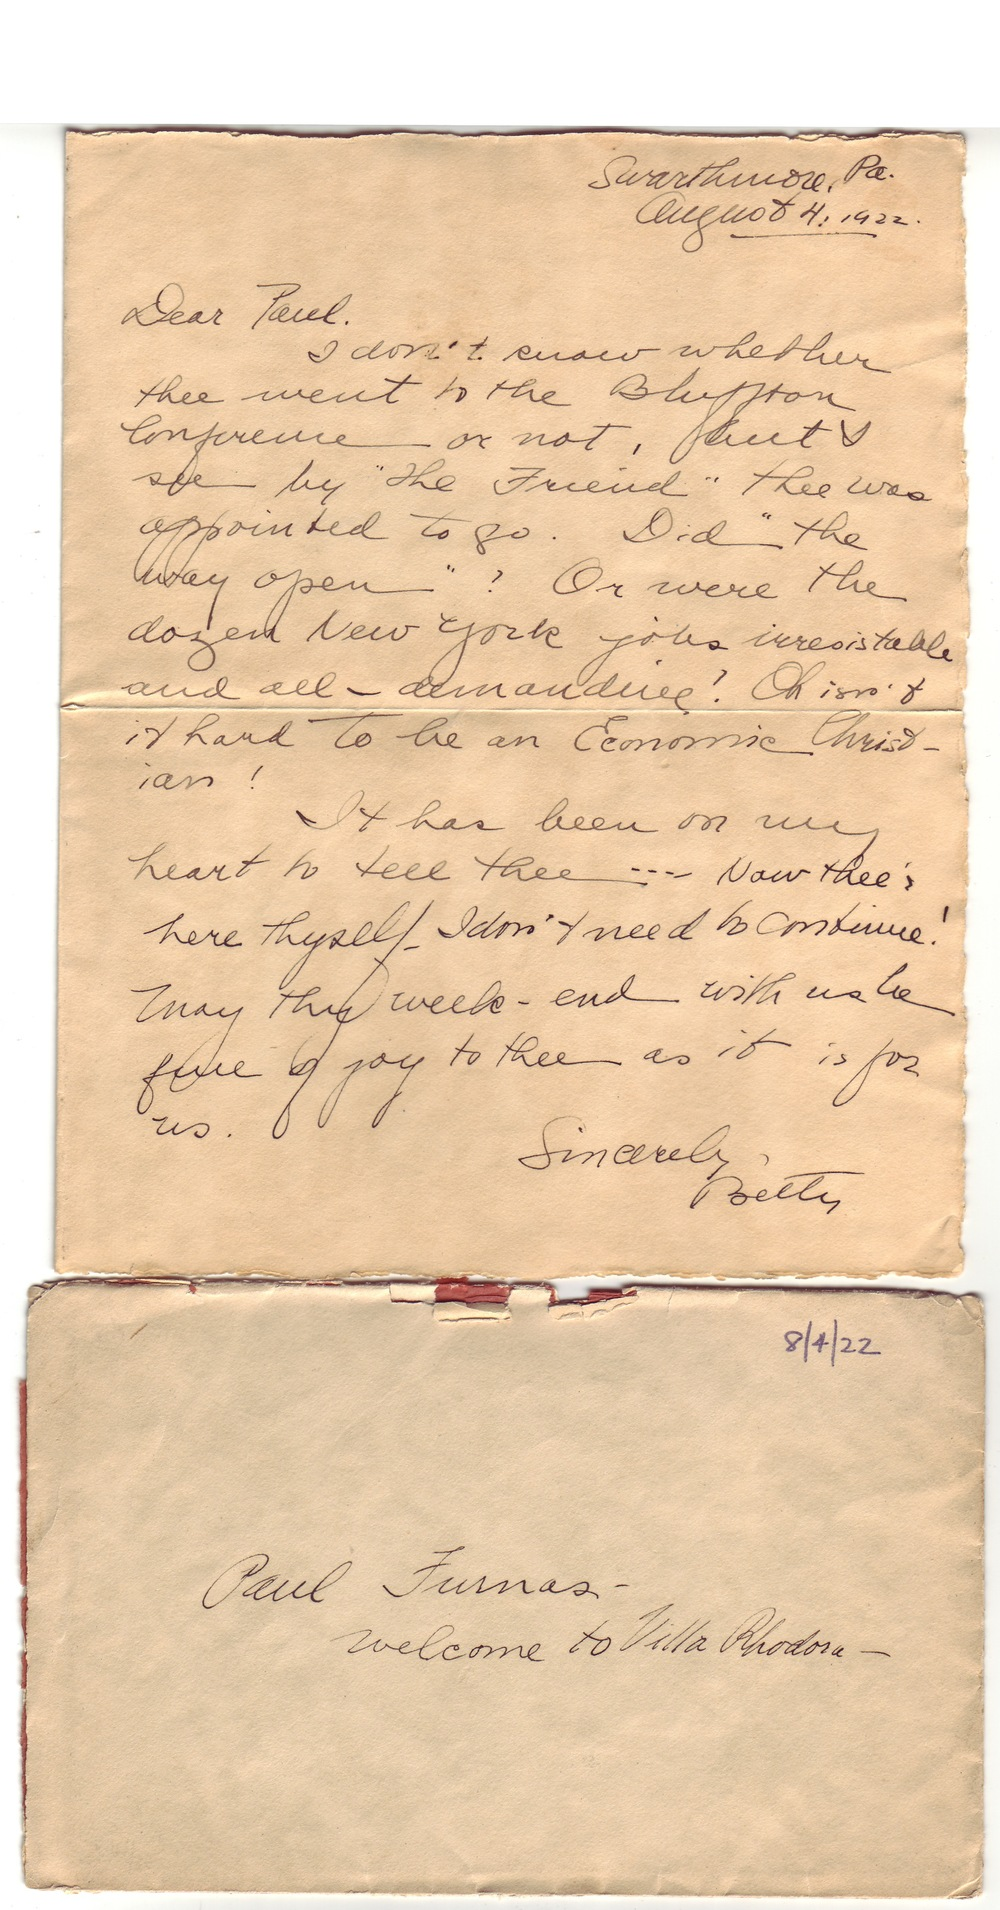 Betty's first letter to Paul